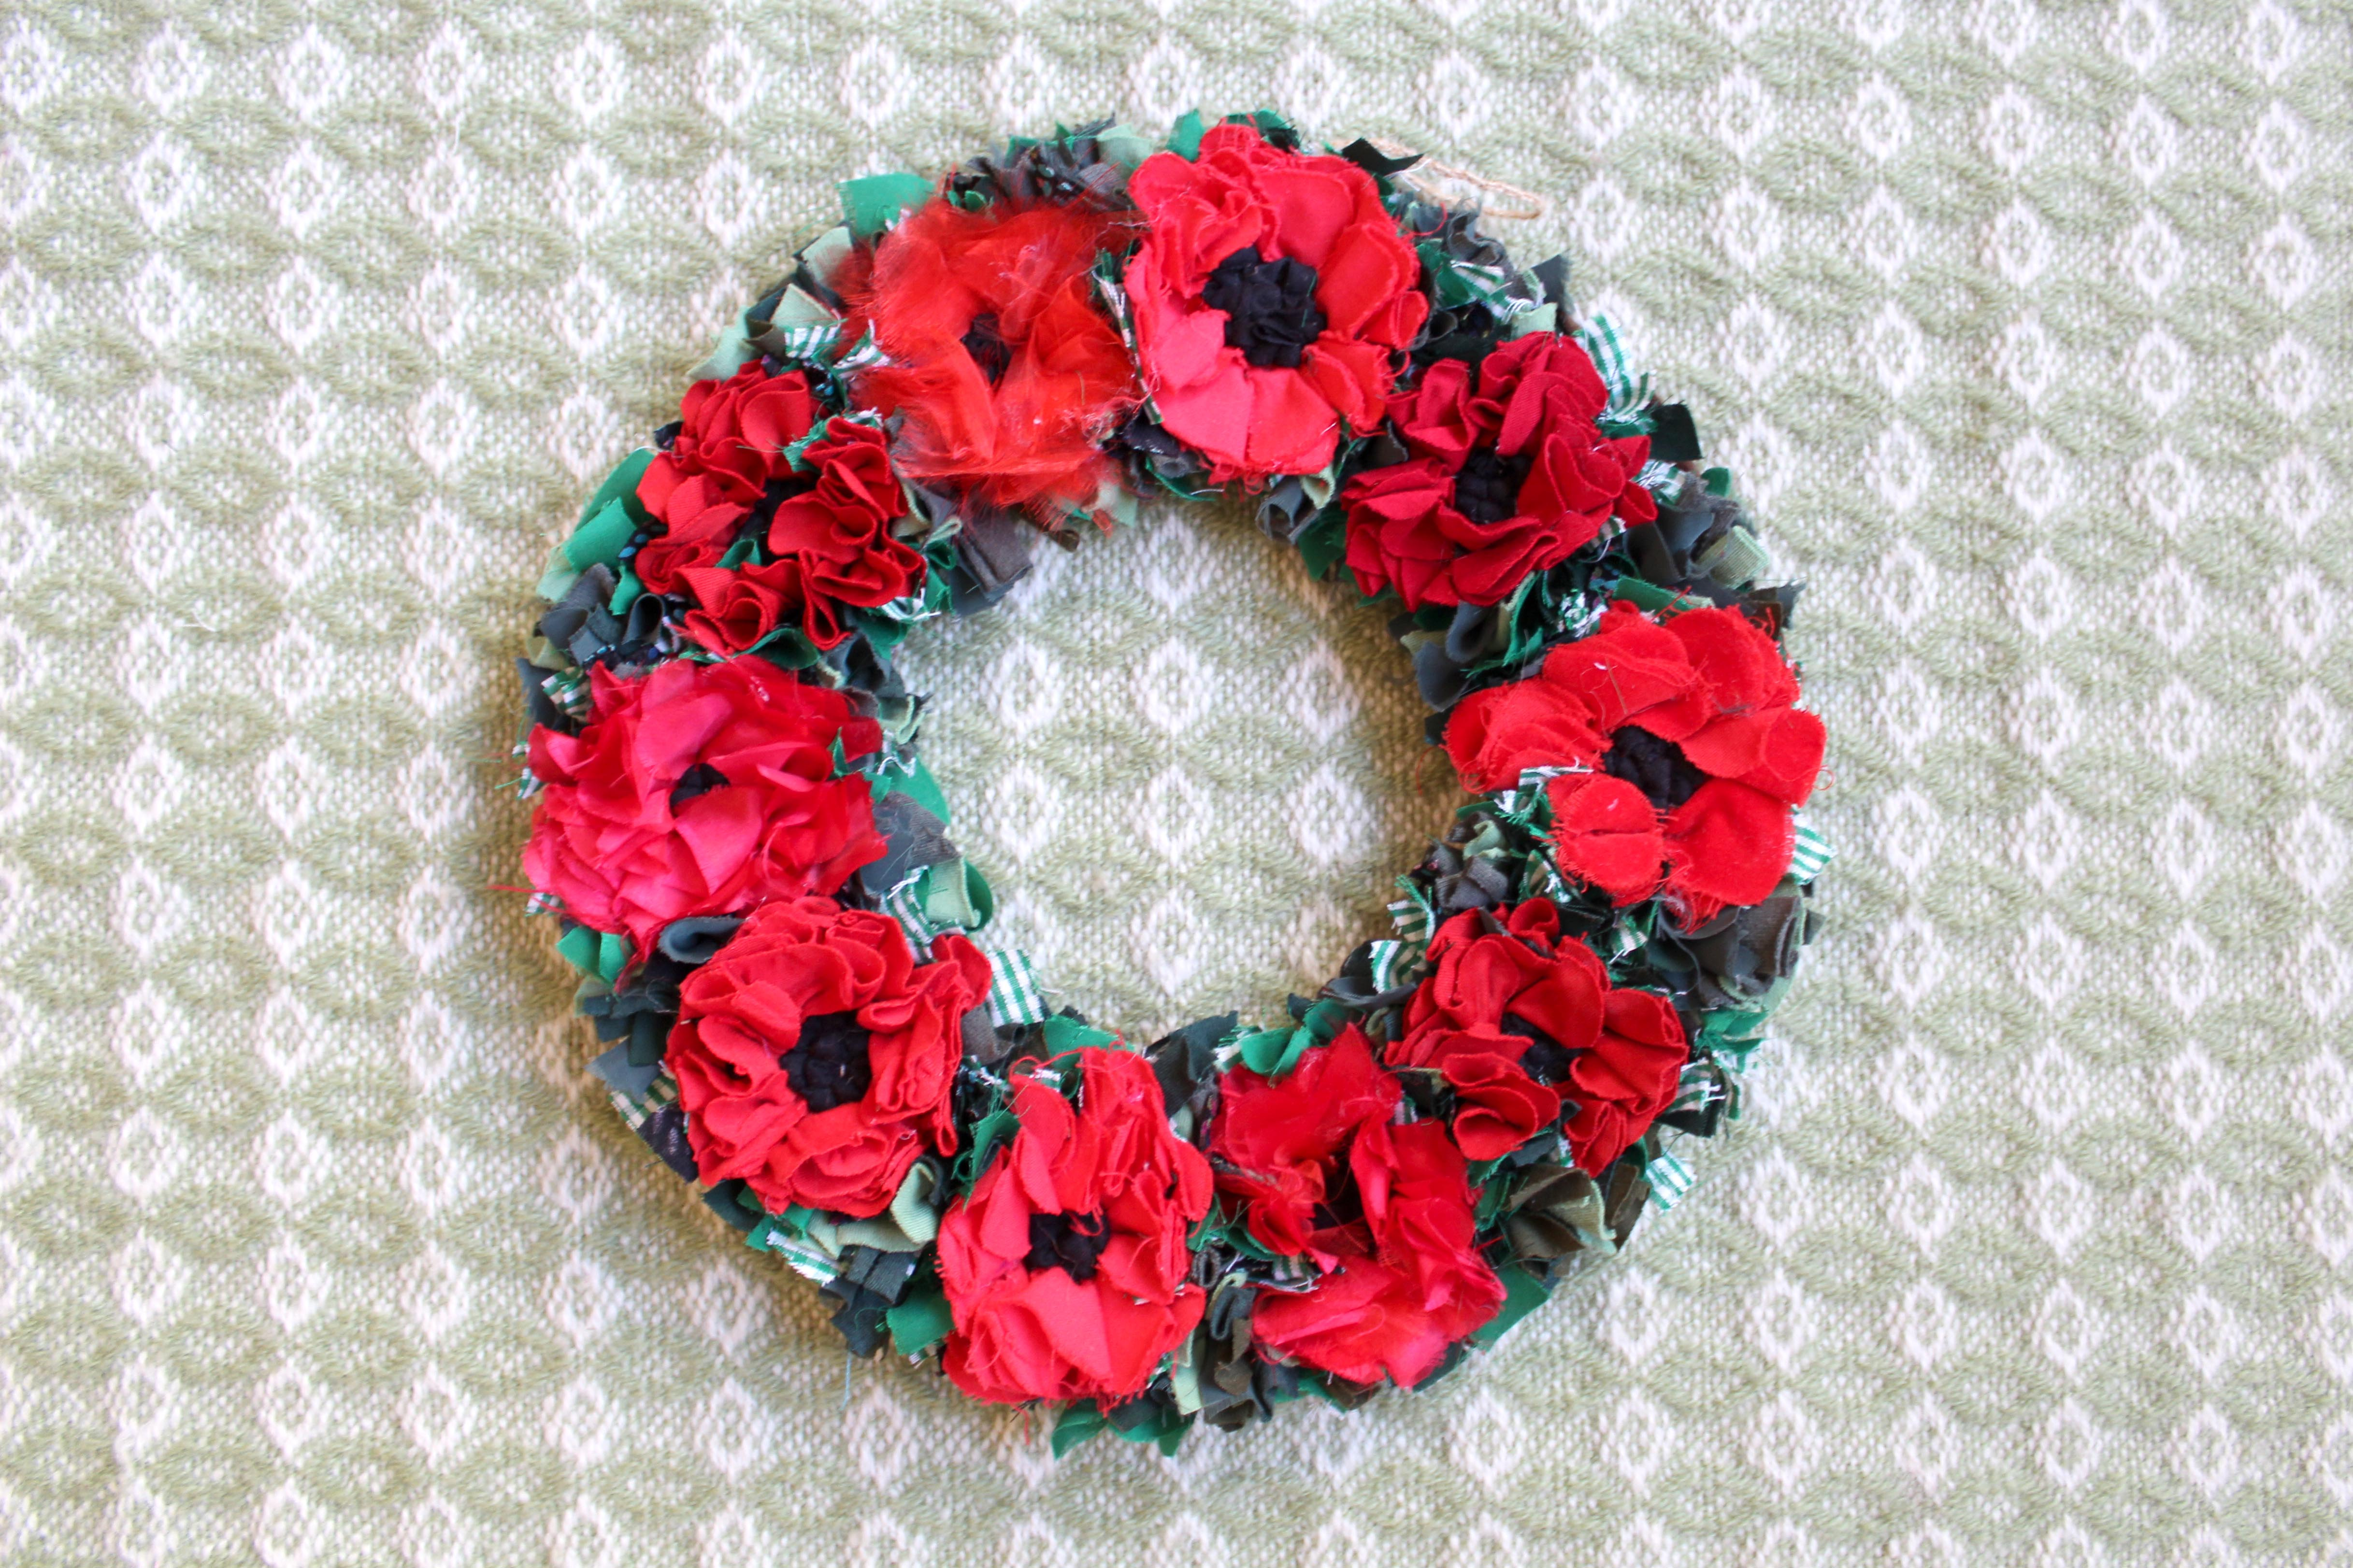 Rag rug poppy wreath made for the WWI centenary.